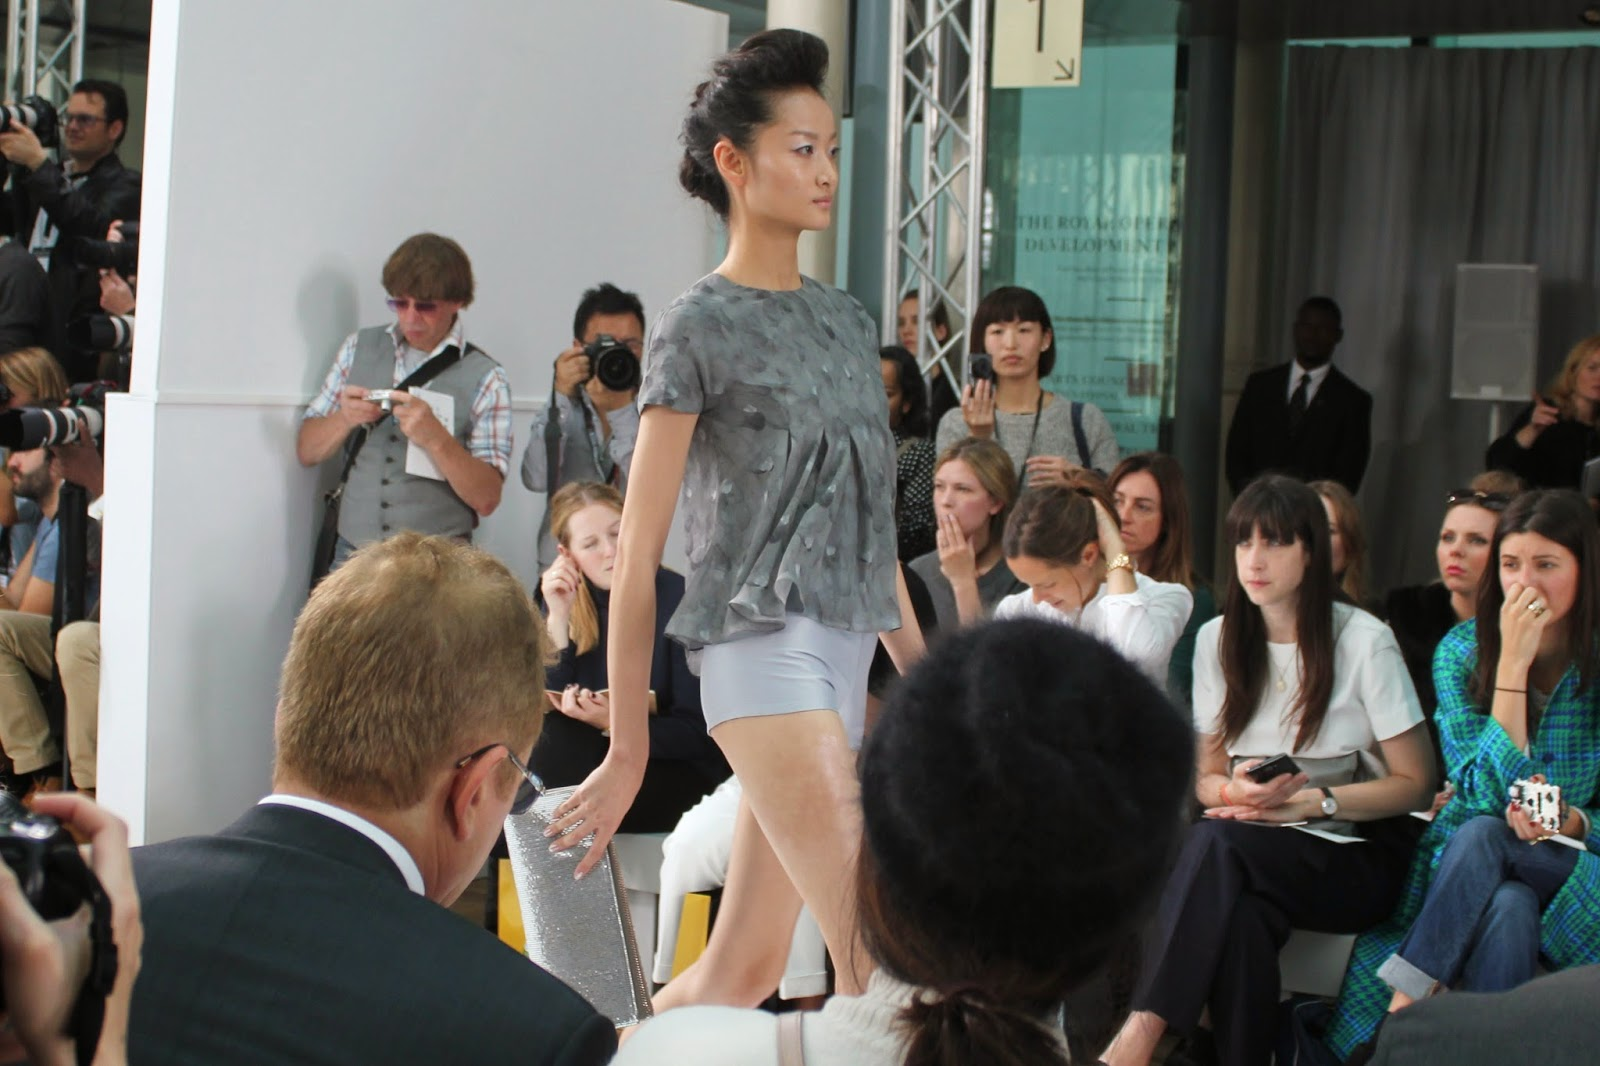 london-fashion-week-2014-lfw-DAKS-show-catwalk-spring-summer-2015-models-clothes-fashion-frow-royal-opera-house-top-shorts-feathers